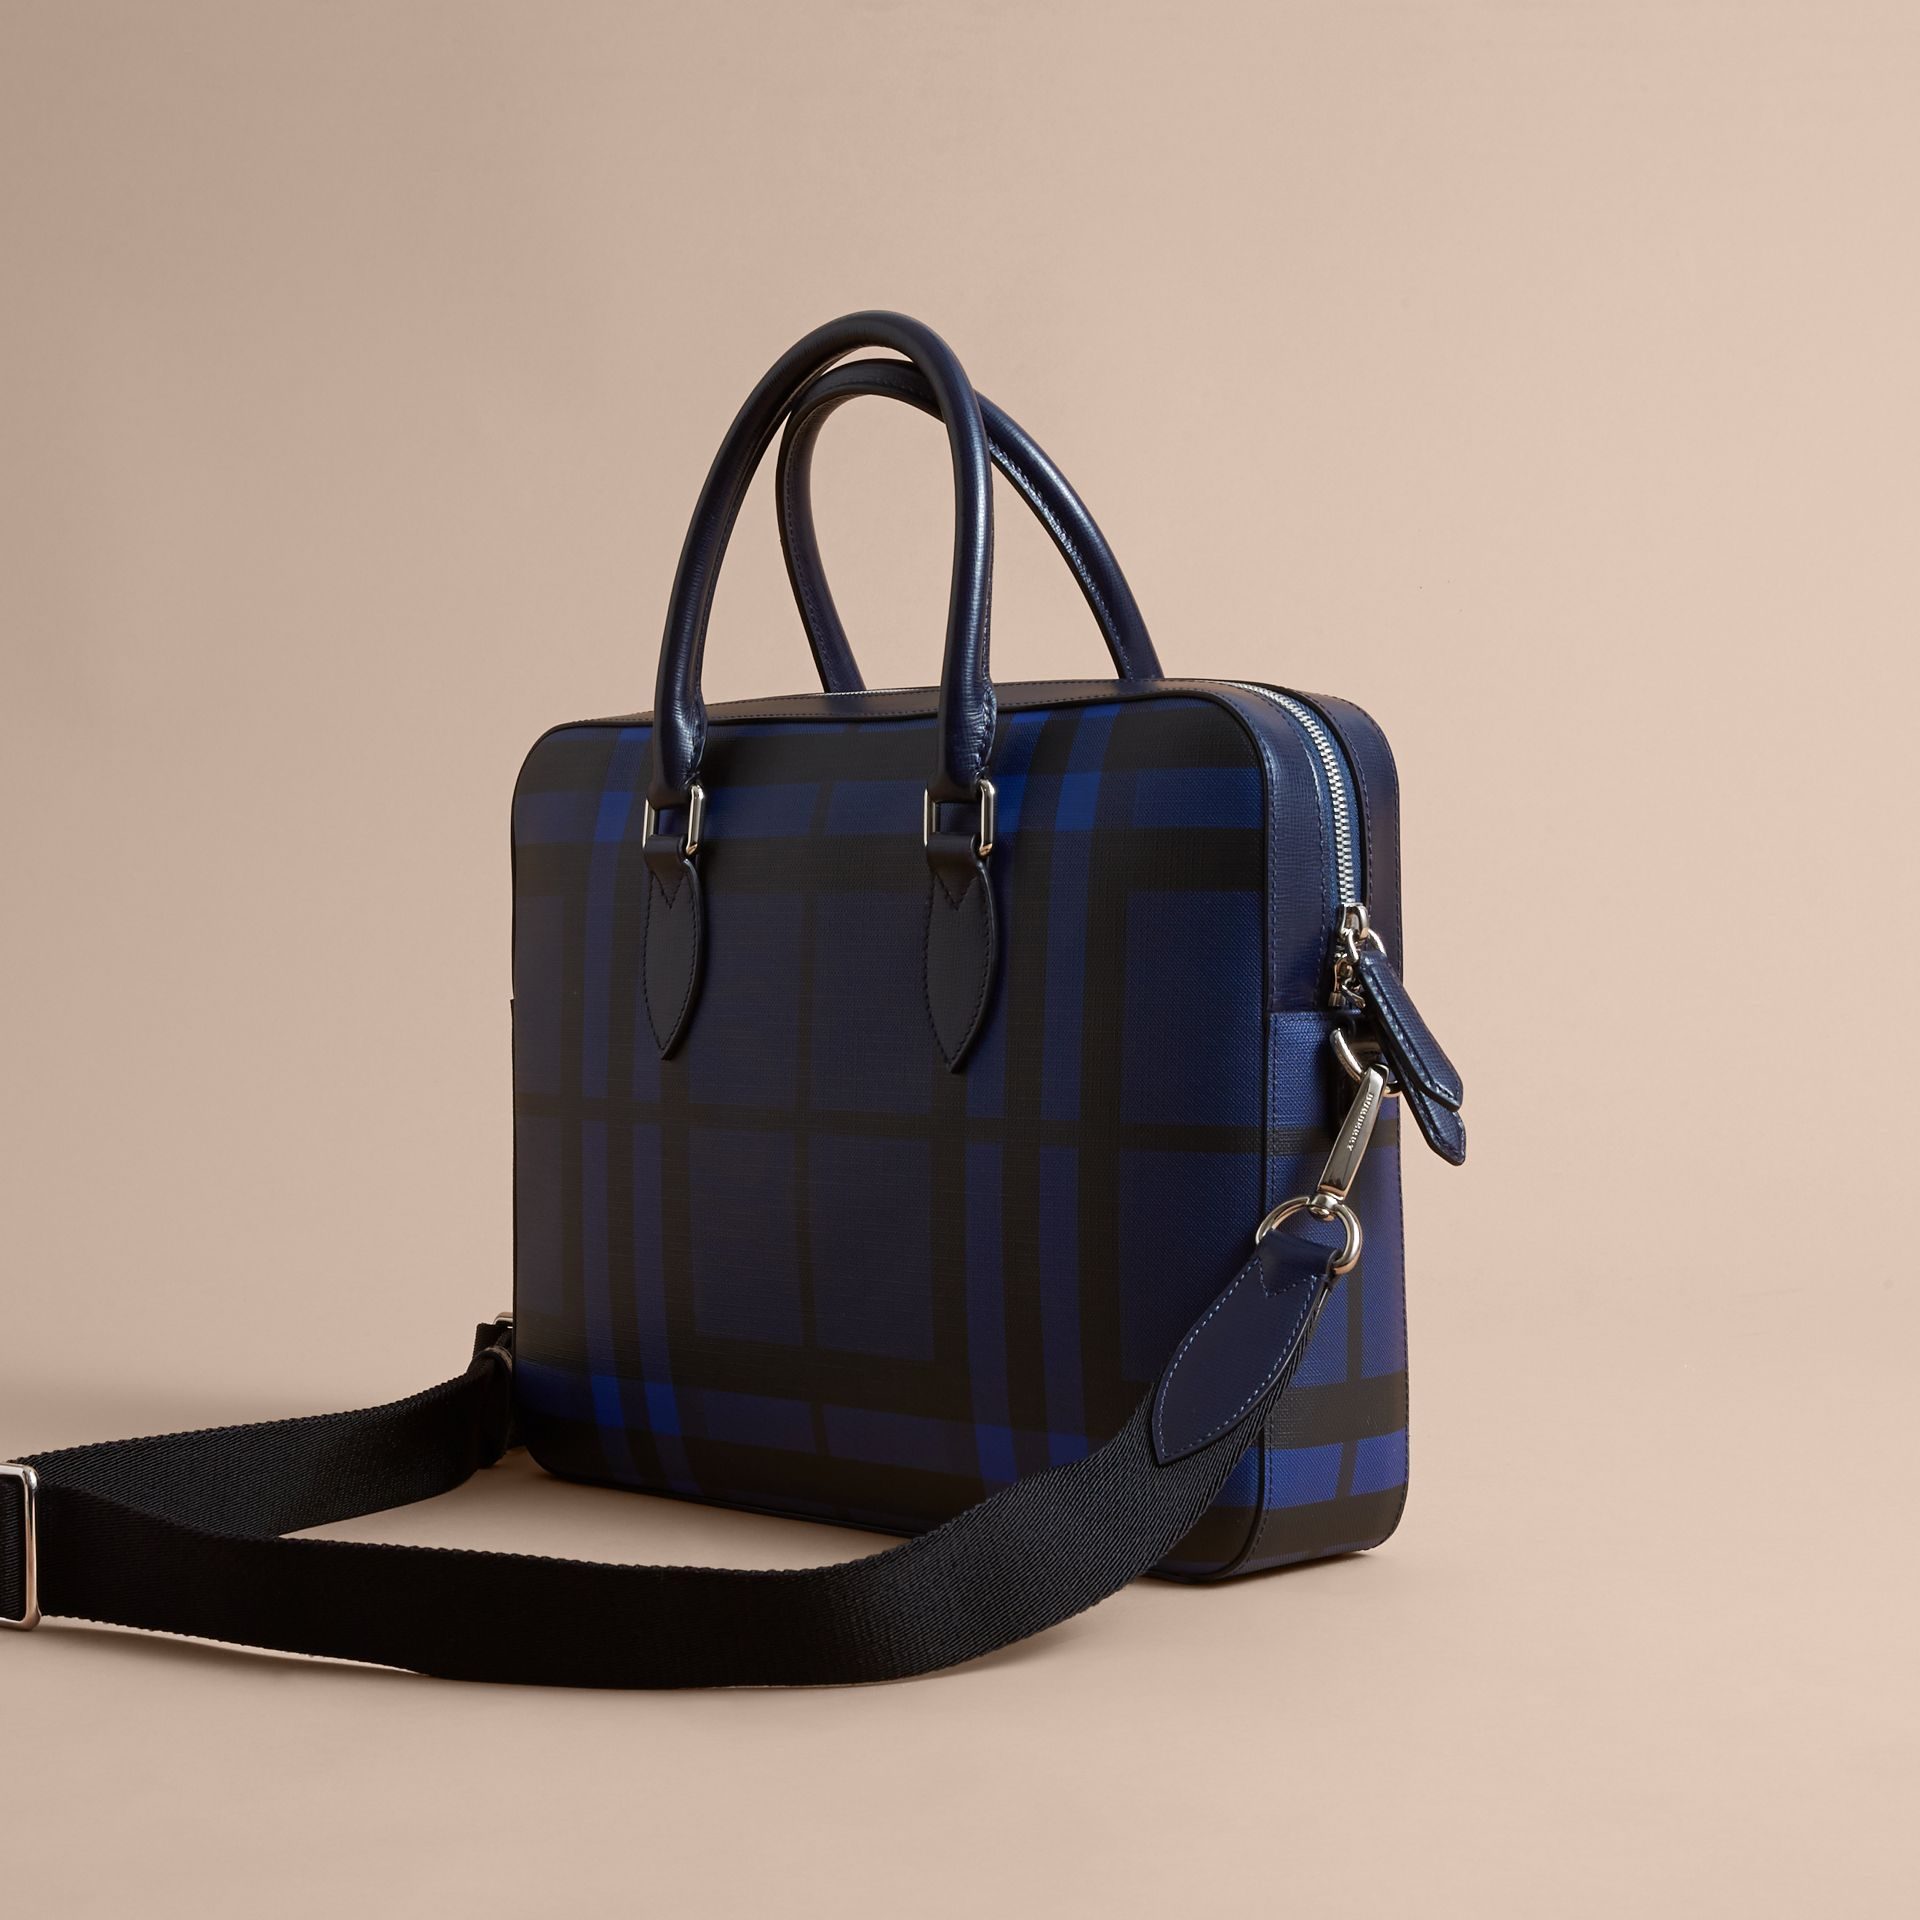 Medium Leather Trim London Check Briefcase in Bright Lapis - Men | Burberry - gallery image 5